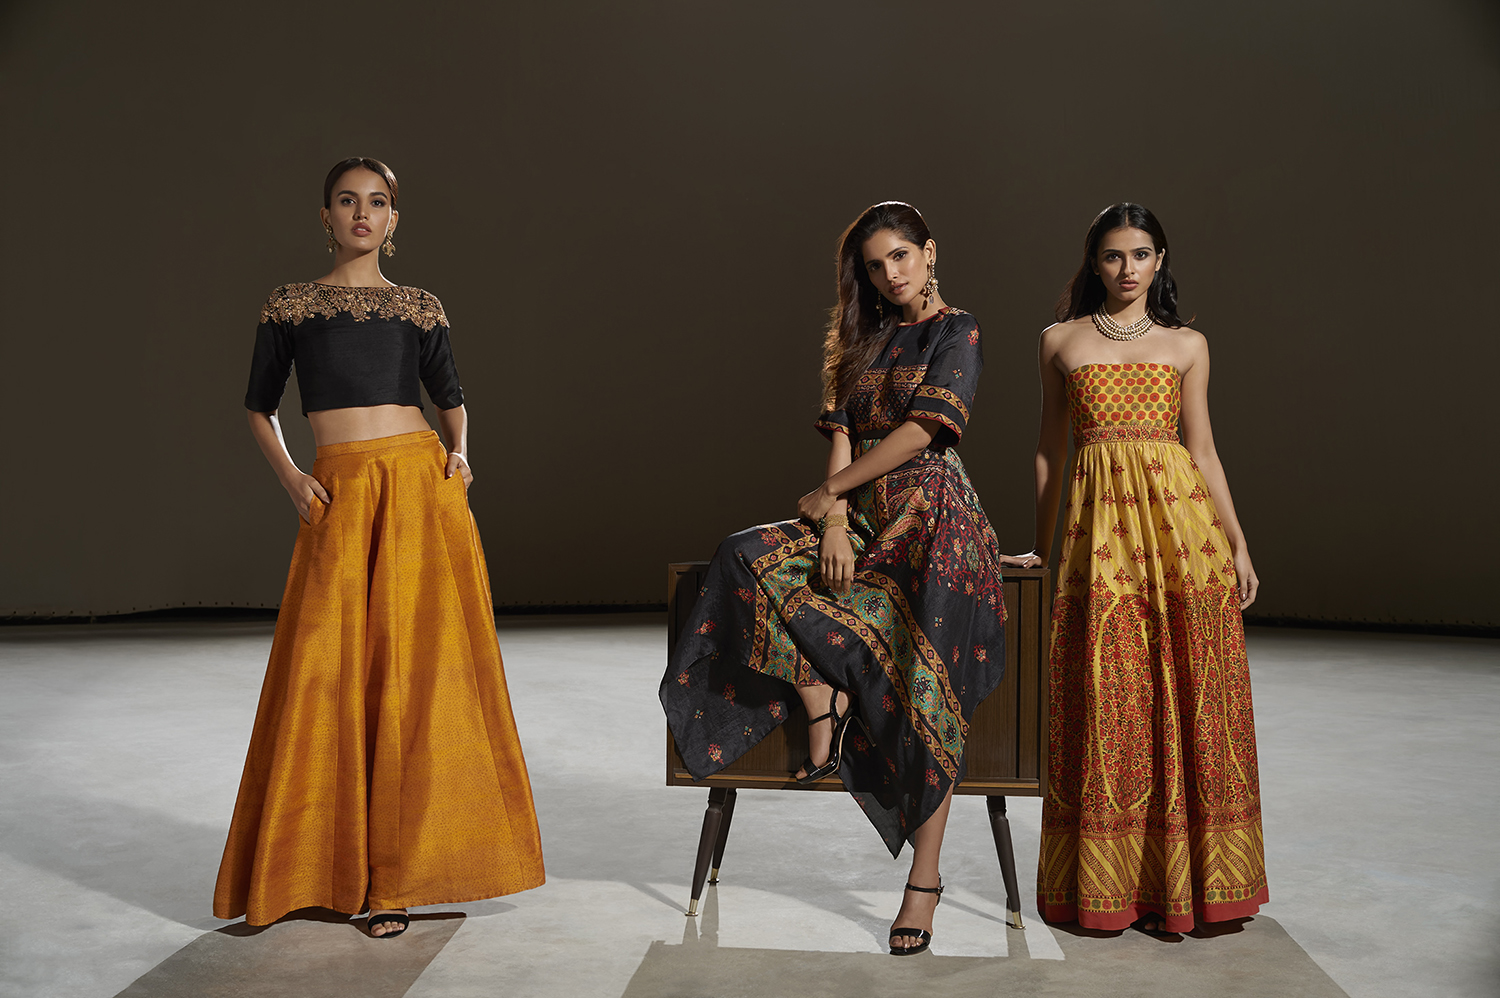 Mba in fashion designing in india